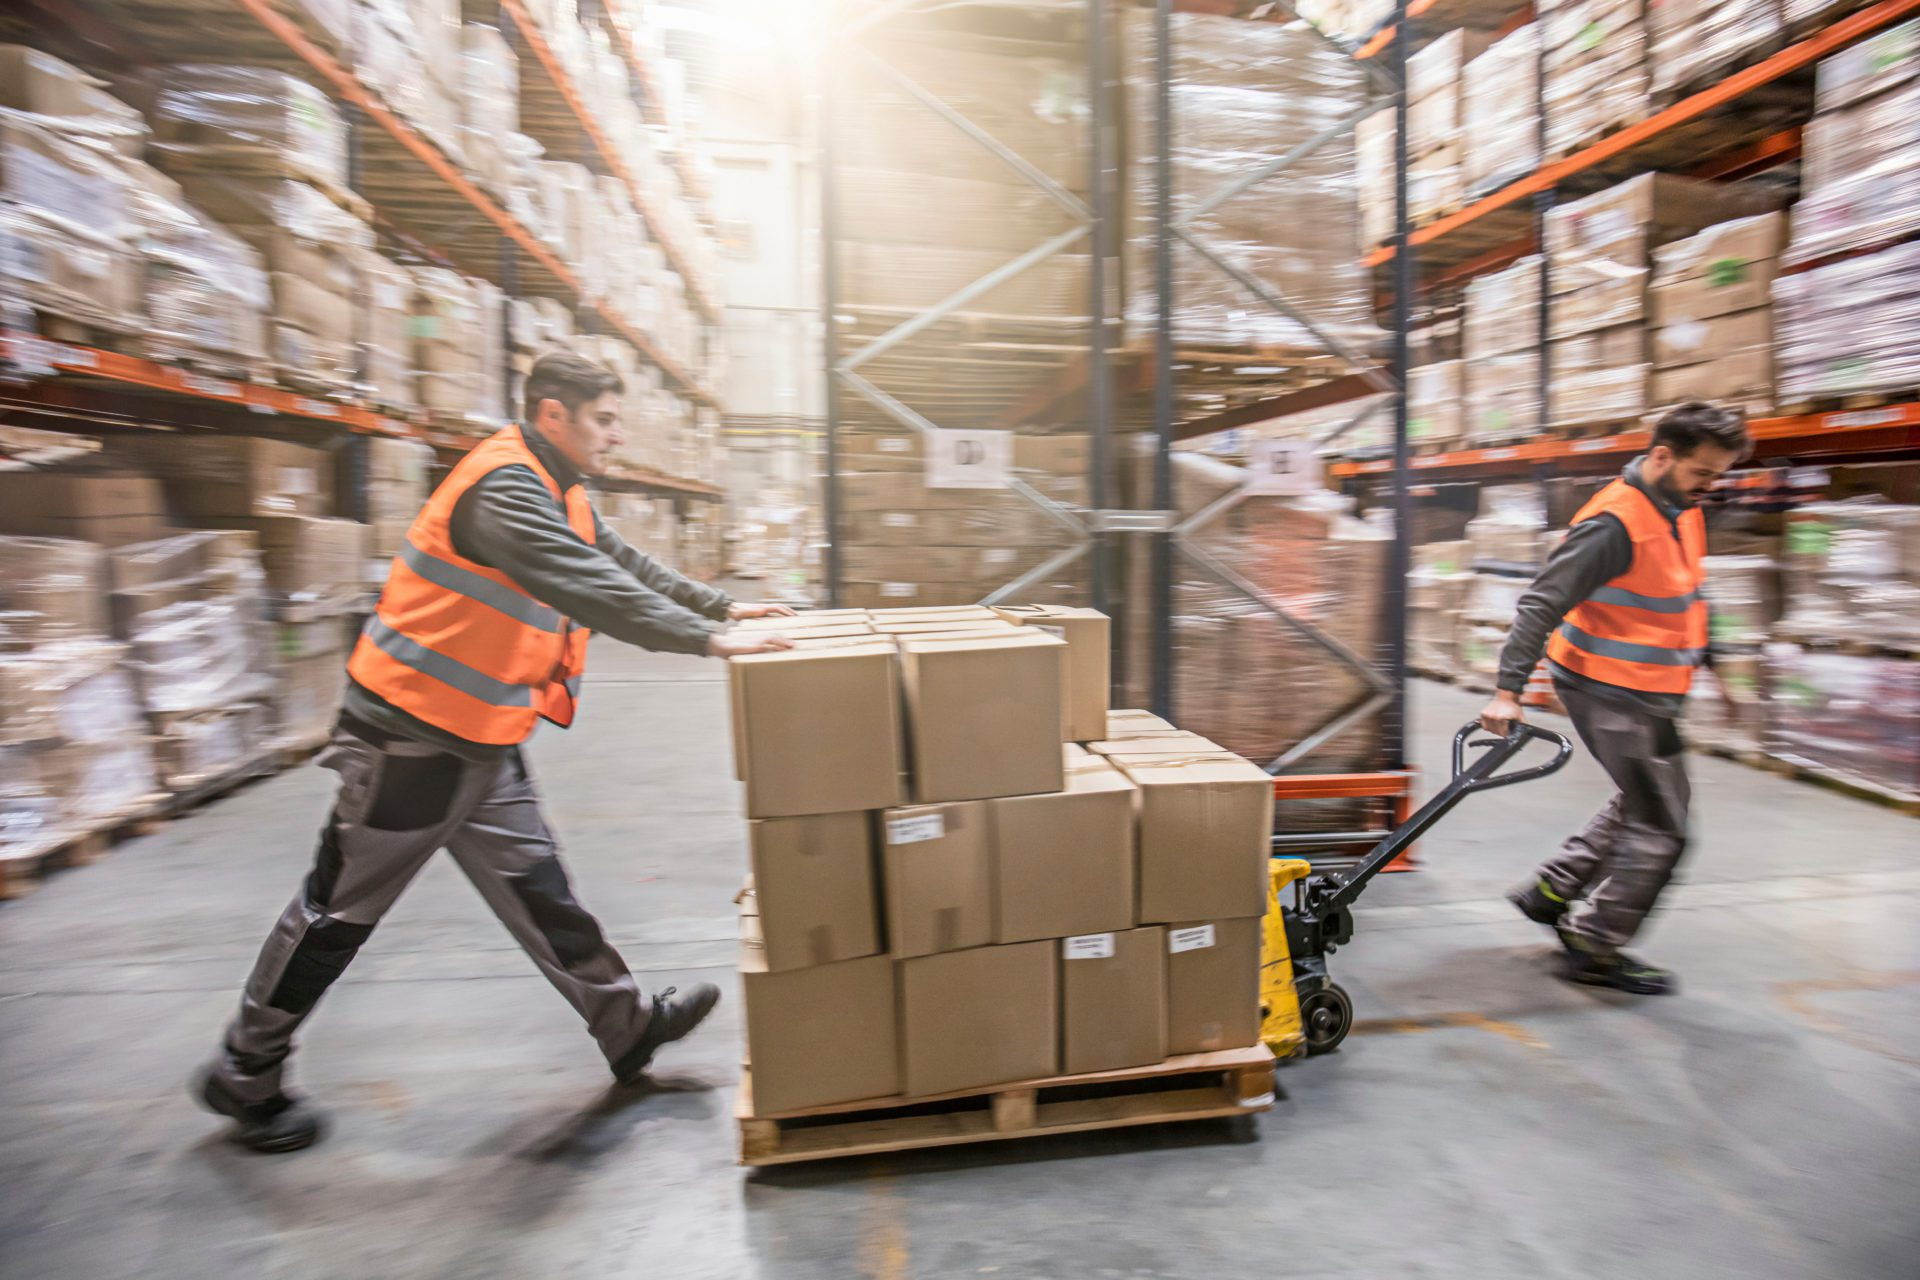 Motion blur of two men moving boxes in a warehouse